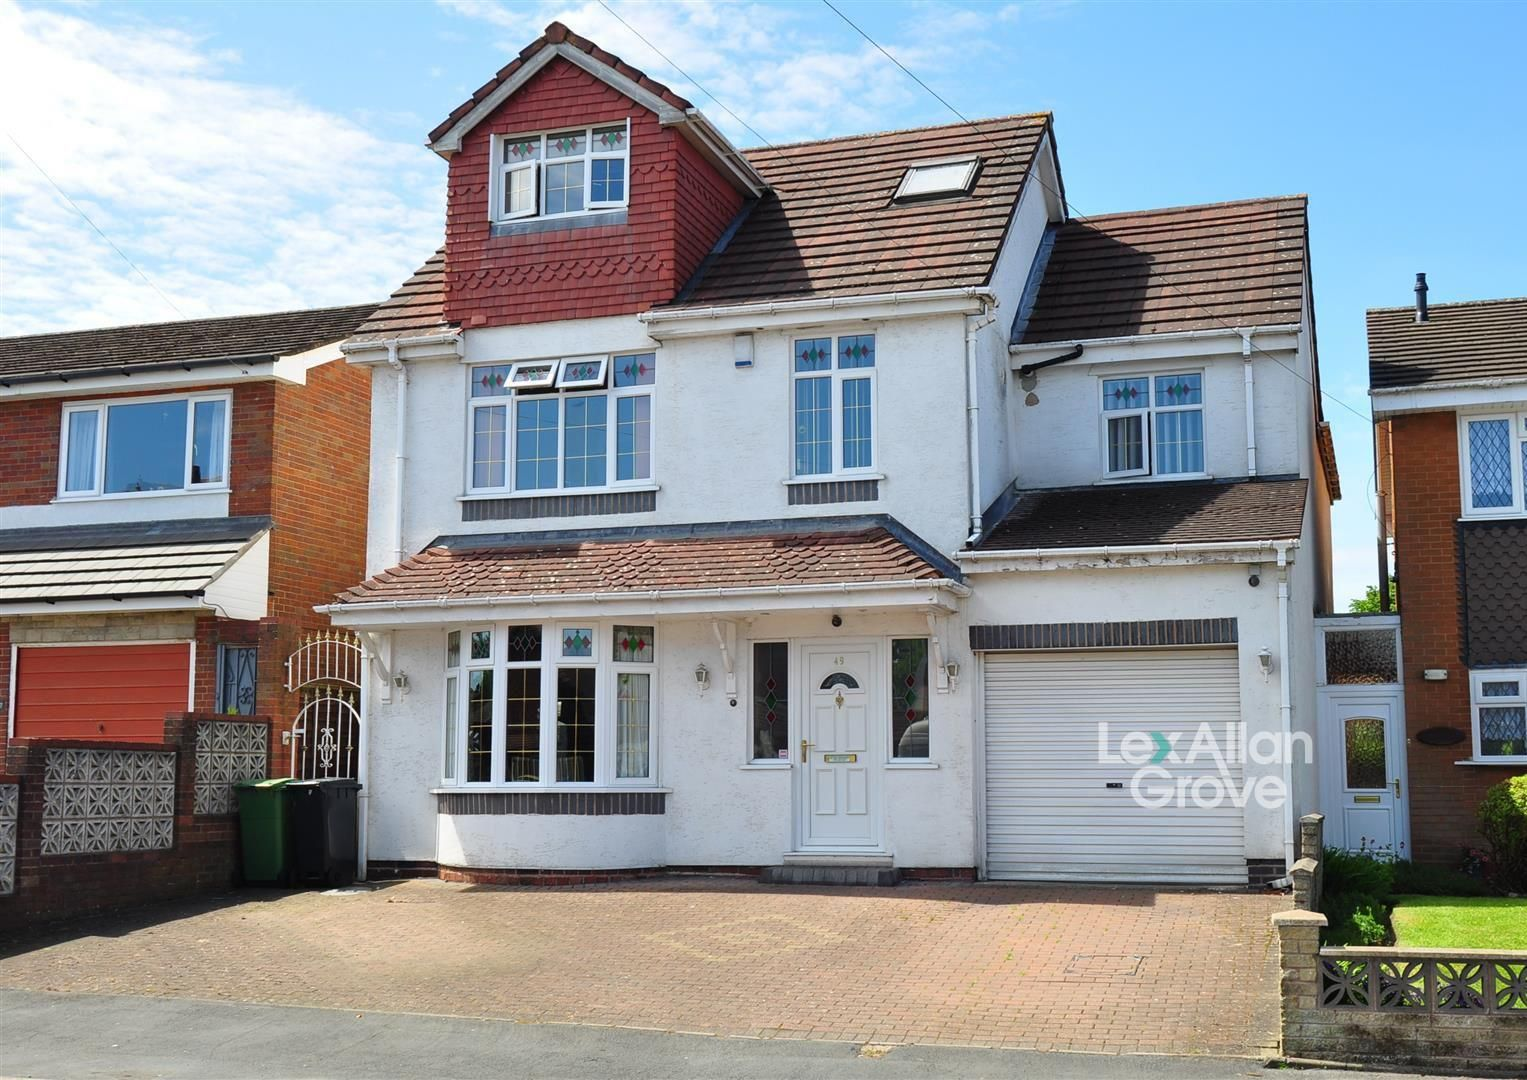 6 bed detached for sale, B62